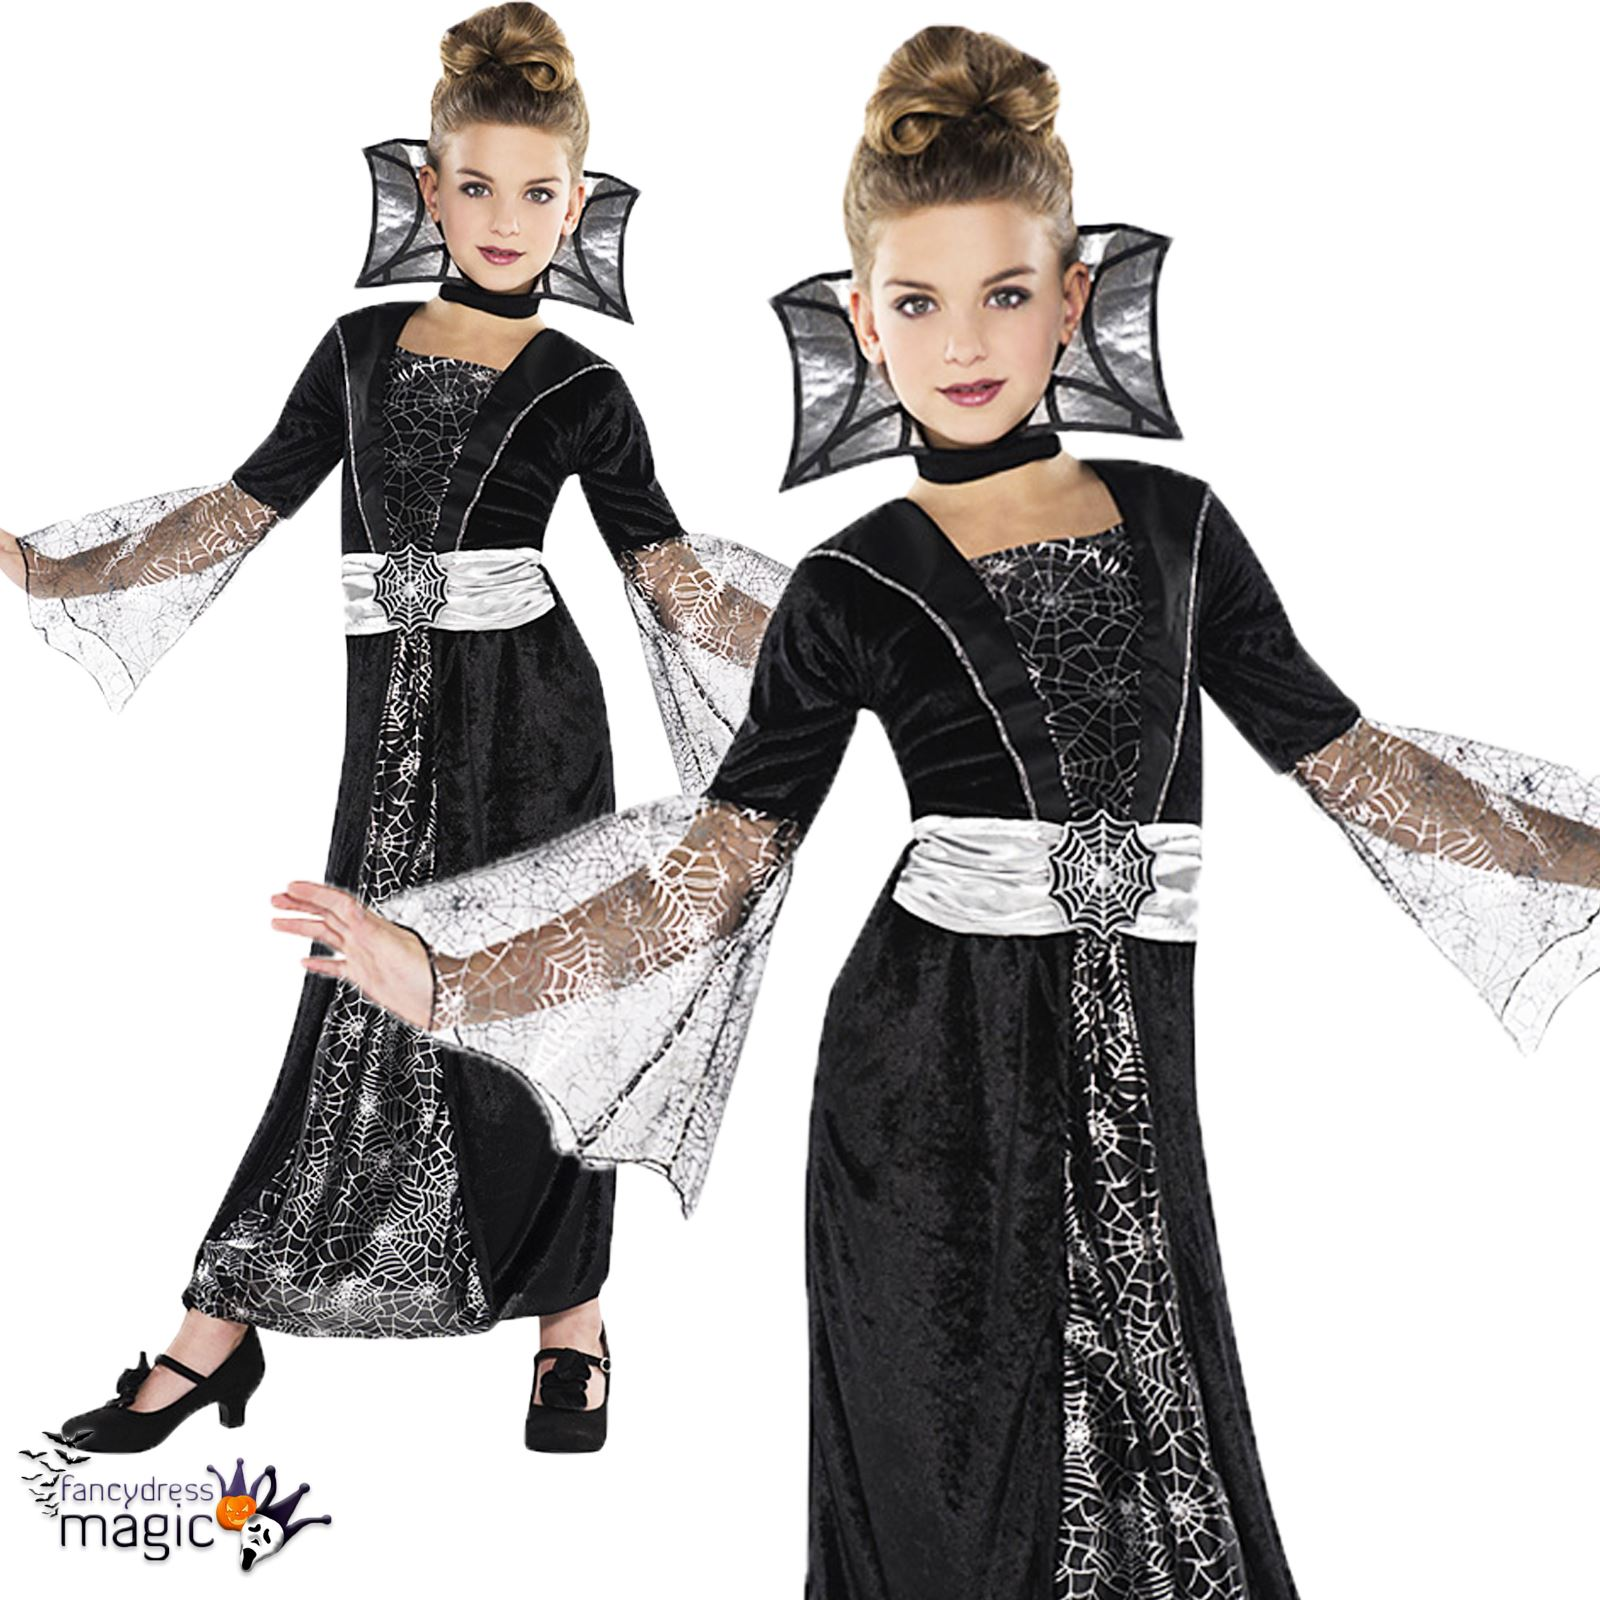 m dchen kinder dunkel gr fin vampir halloween party kost m kleid outfit ebay. Black Bedroom Furniture Sets. Home Design Ideas